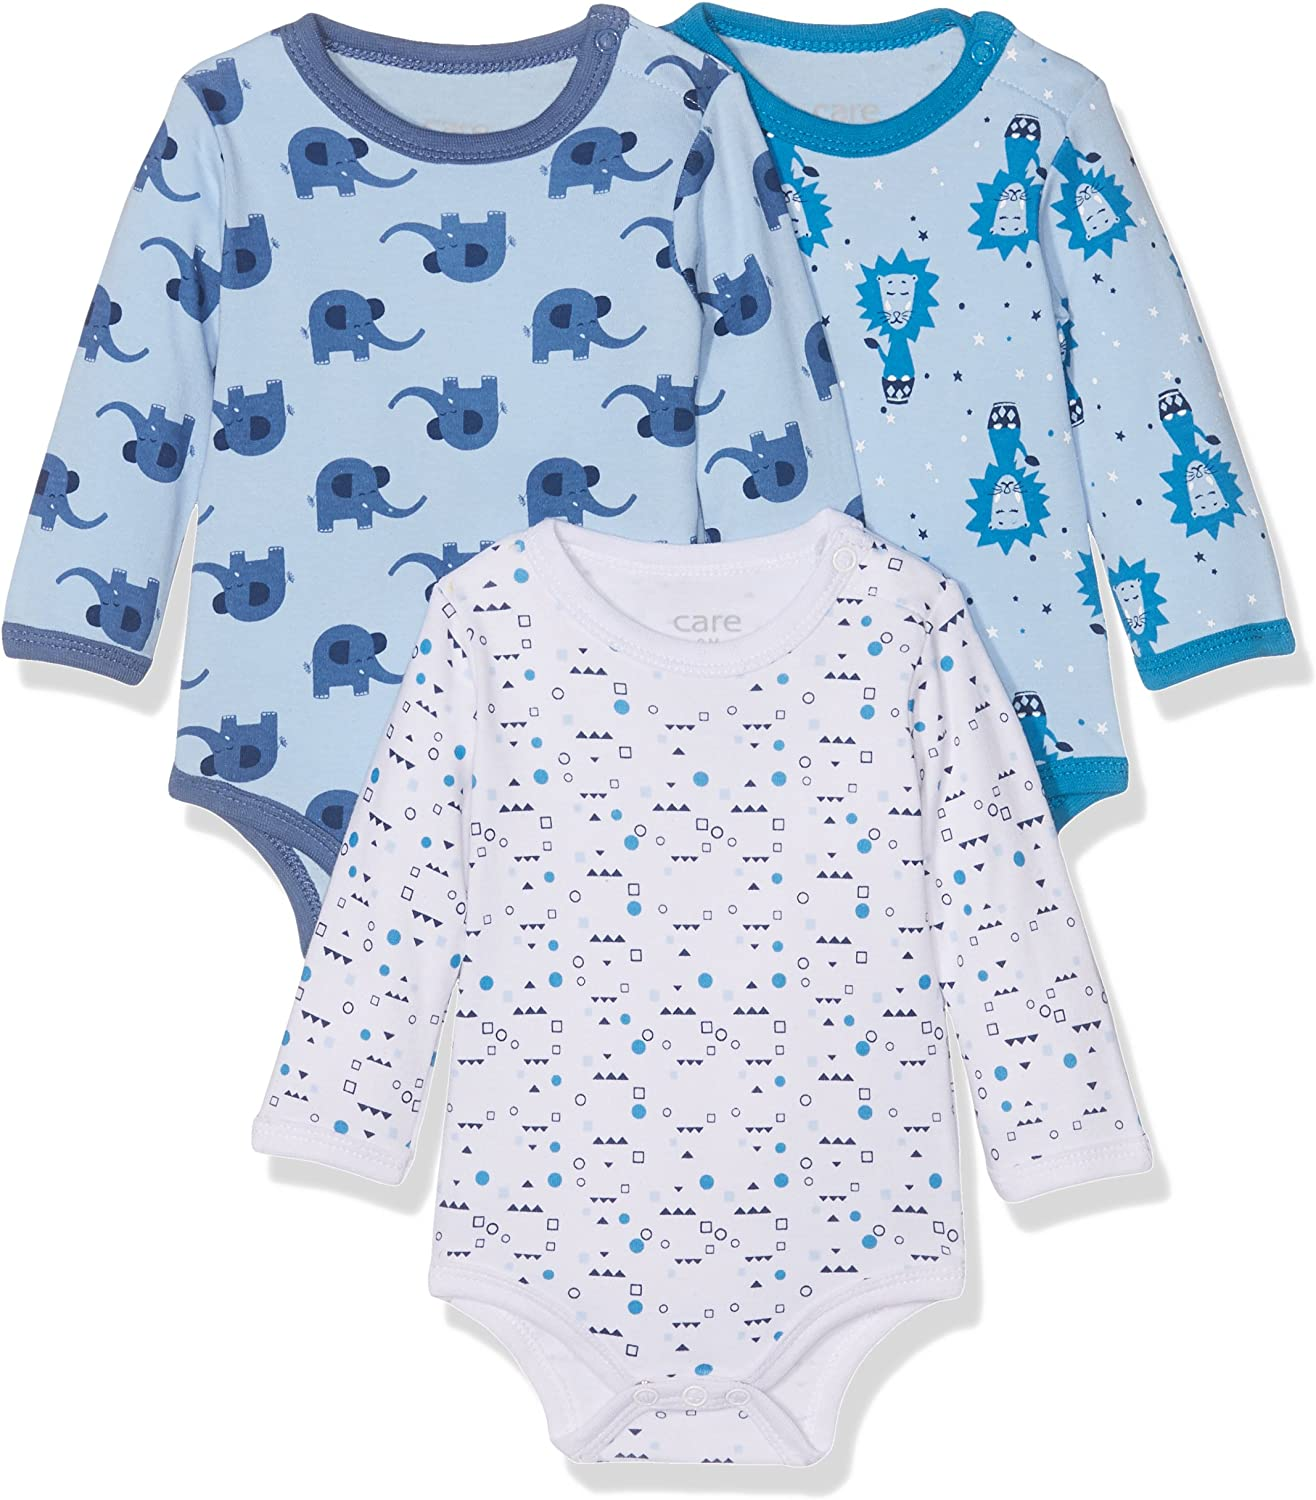 Care Baby Boys Bodysuit Pack of 3